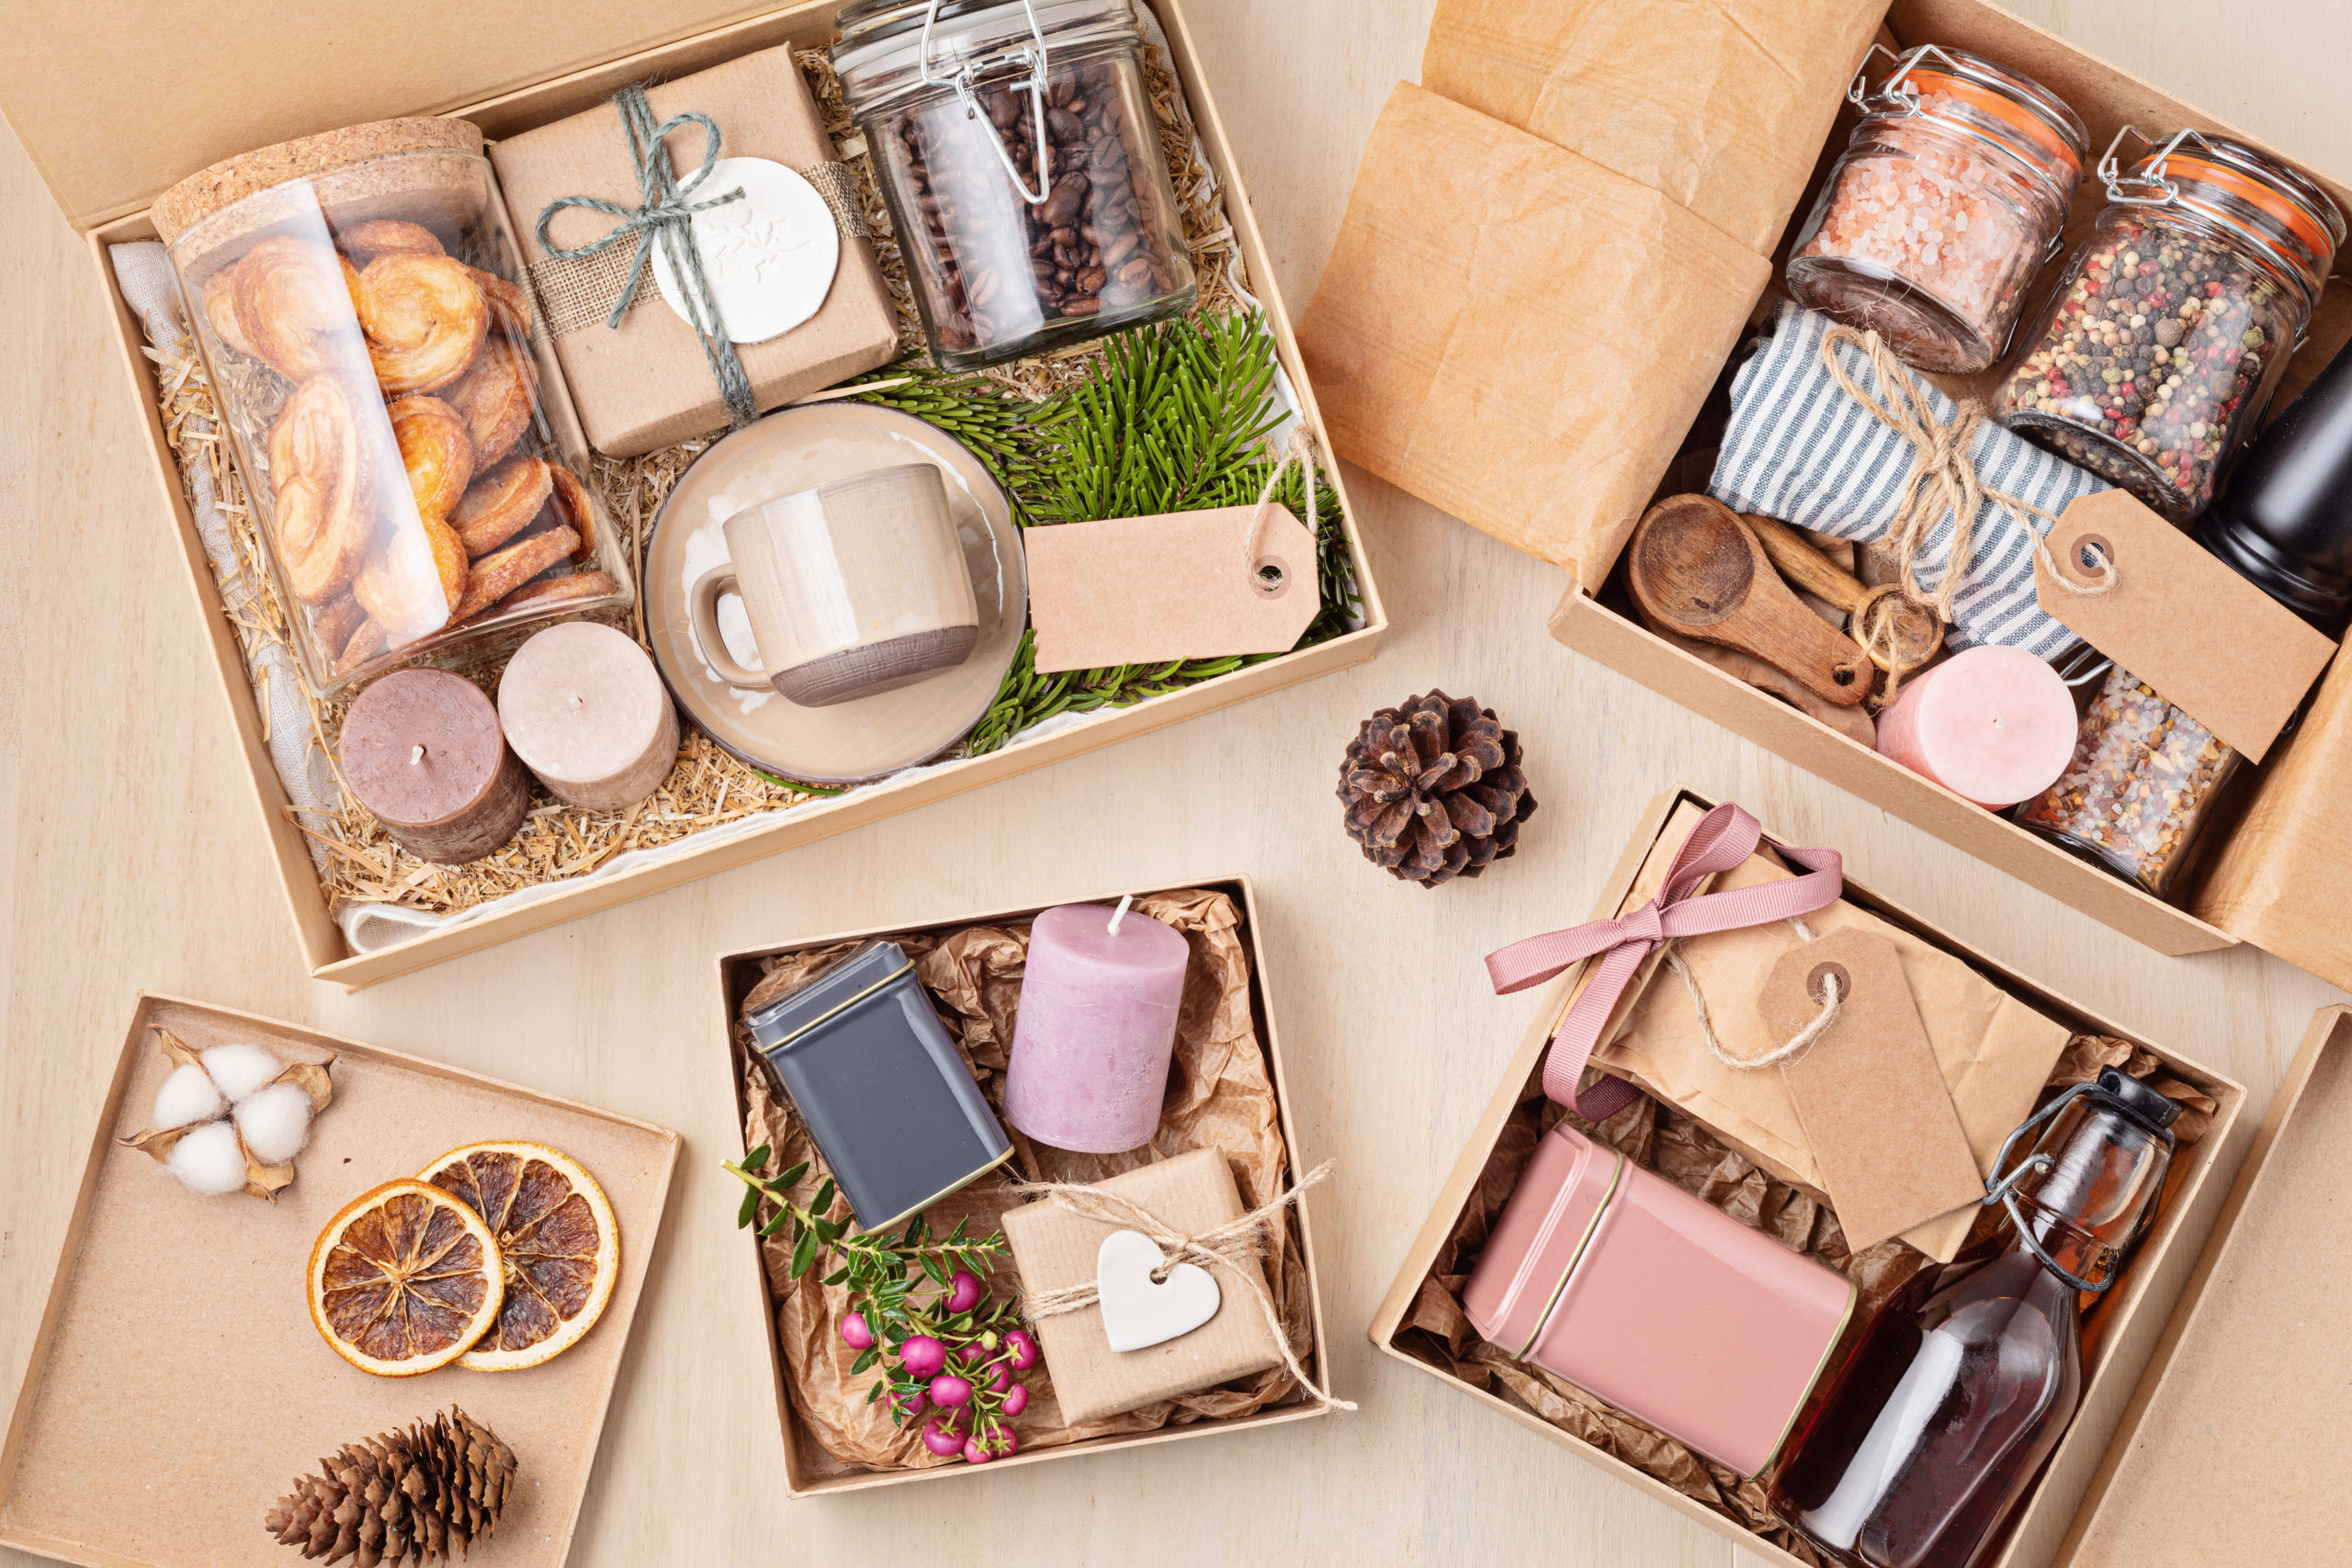 How to Encourage Employees with Corporate Gifts